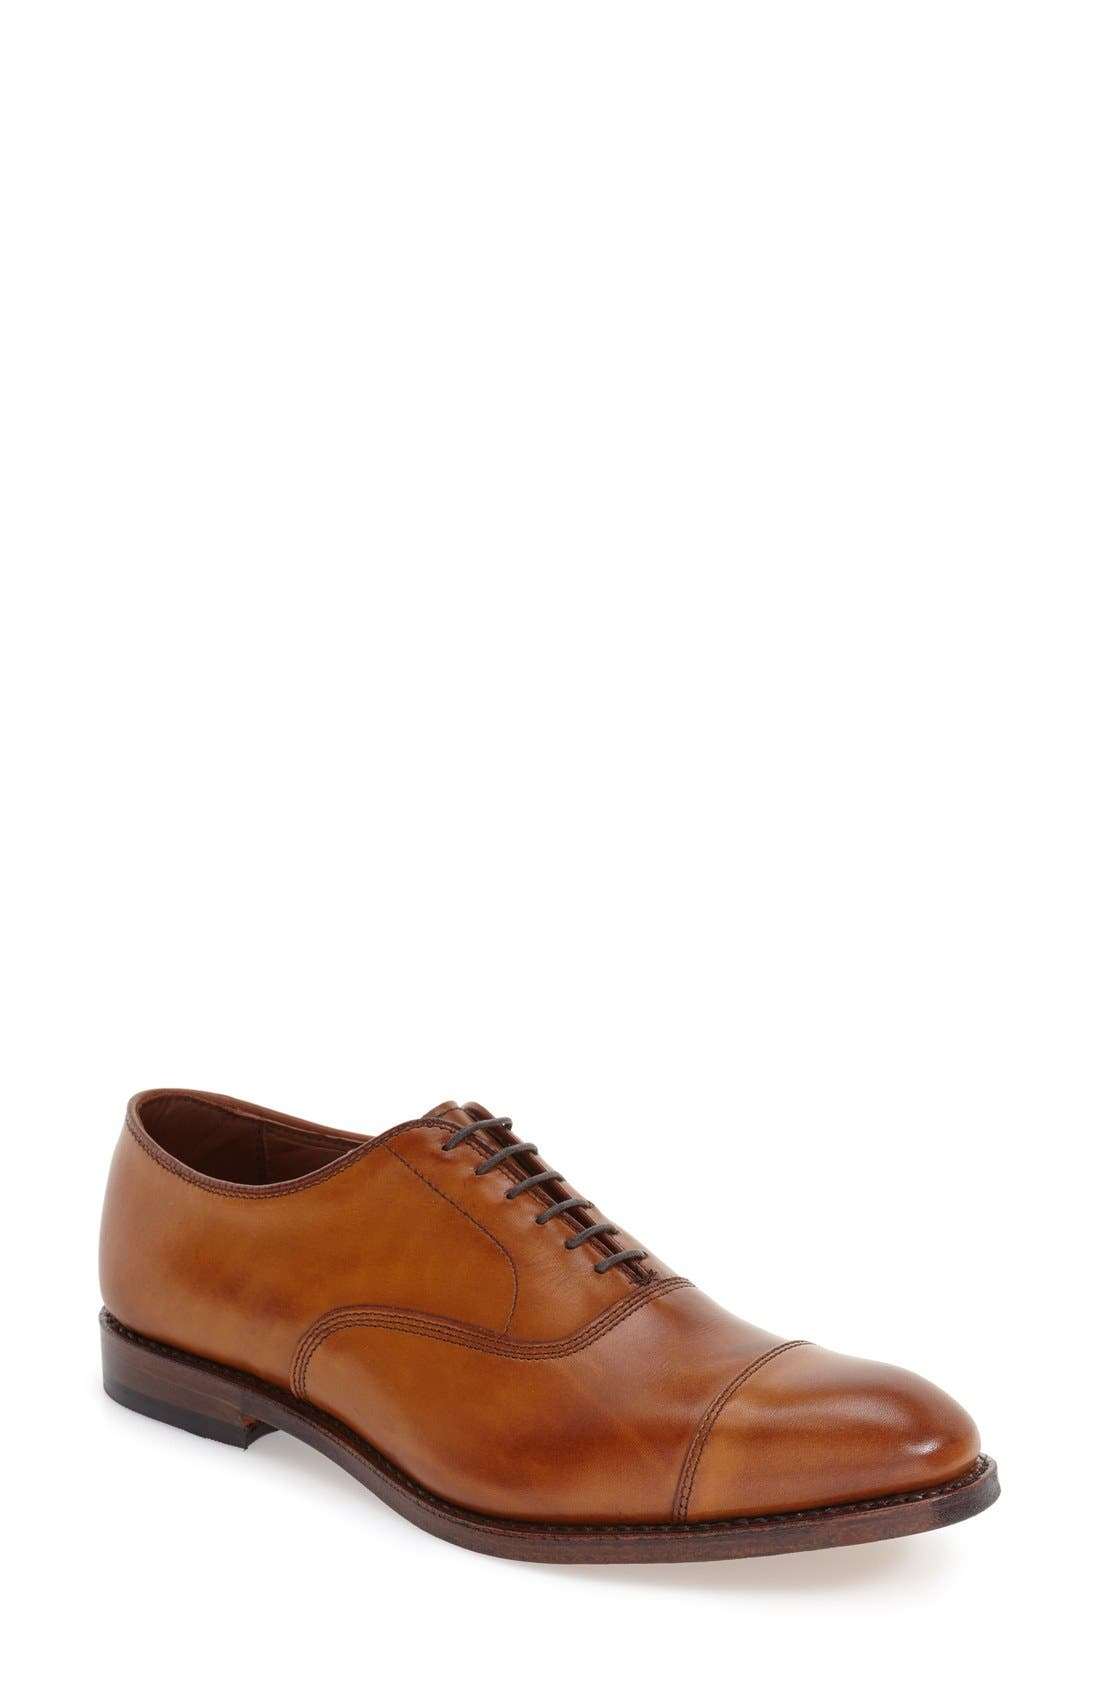 ALLEN EDMONDS, 'Park Avenue' Cap Toe Oxford, Main thumbnail 1, color, 212